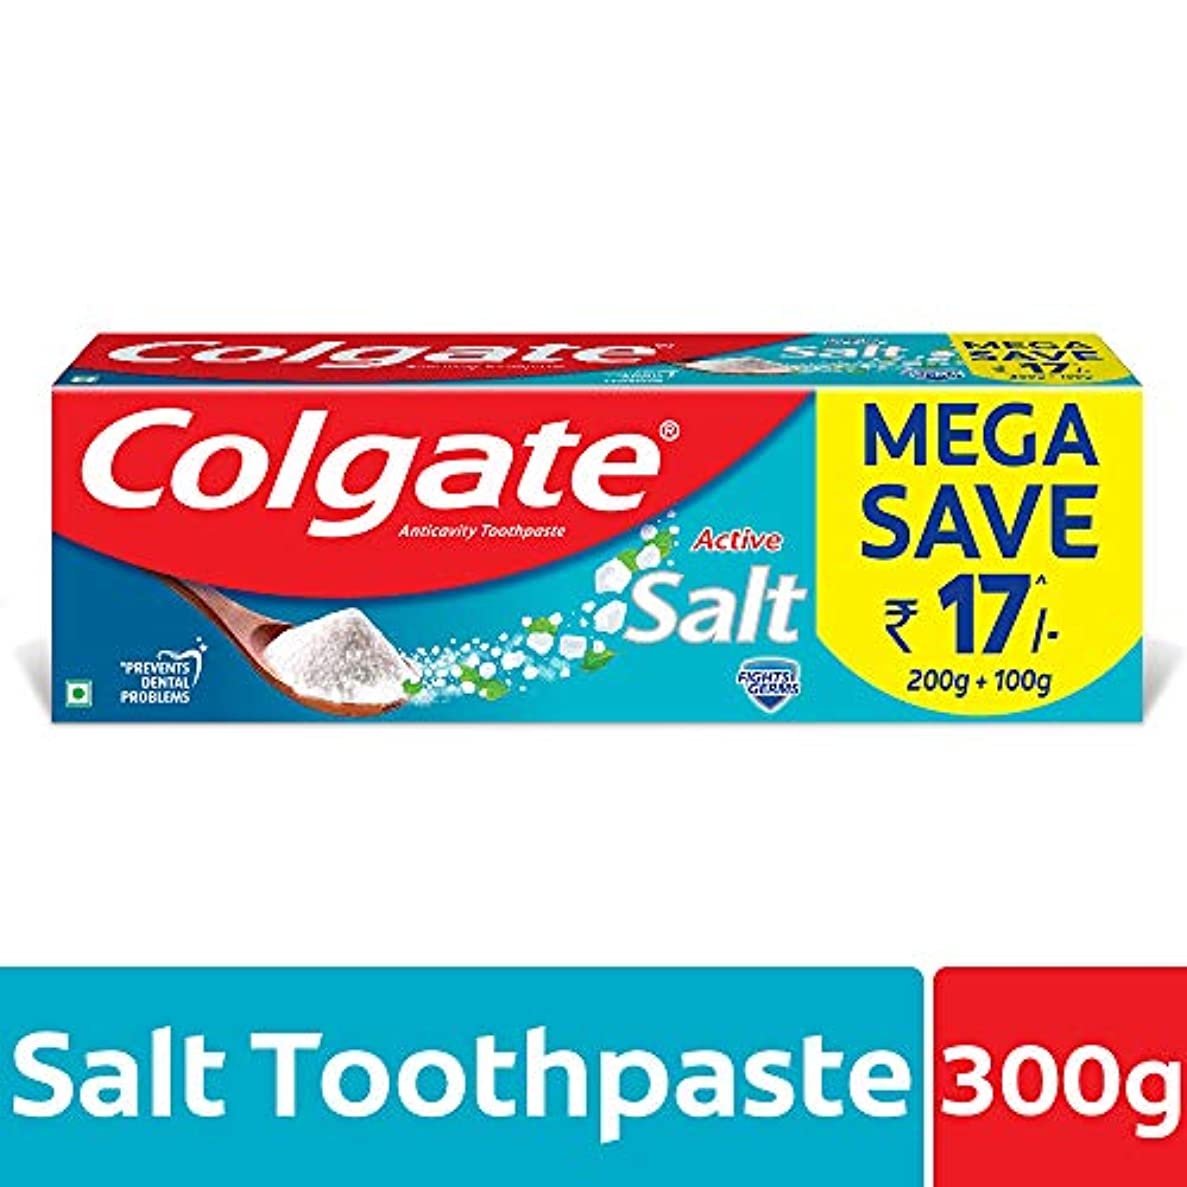 に対処する回る調停者Colgate Active Salt Toothpaste, 300gm(200gm + 100gm)